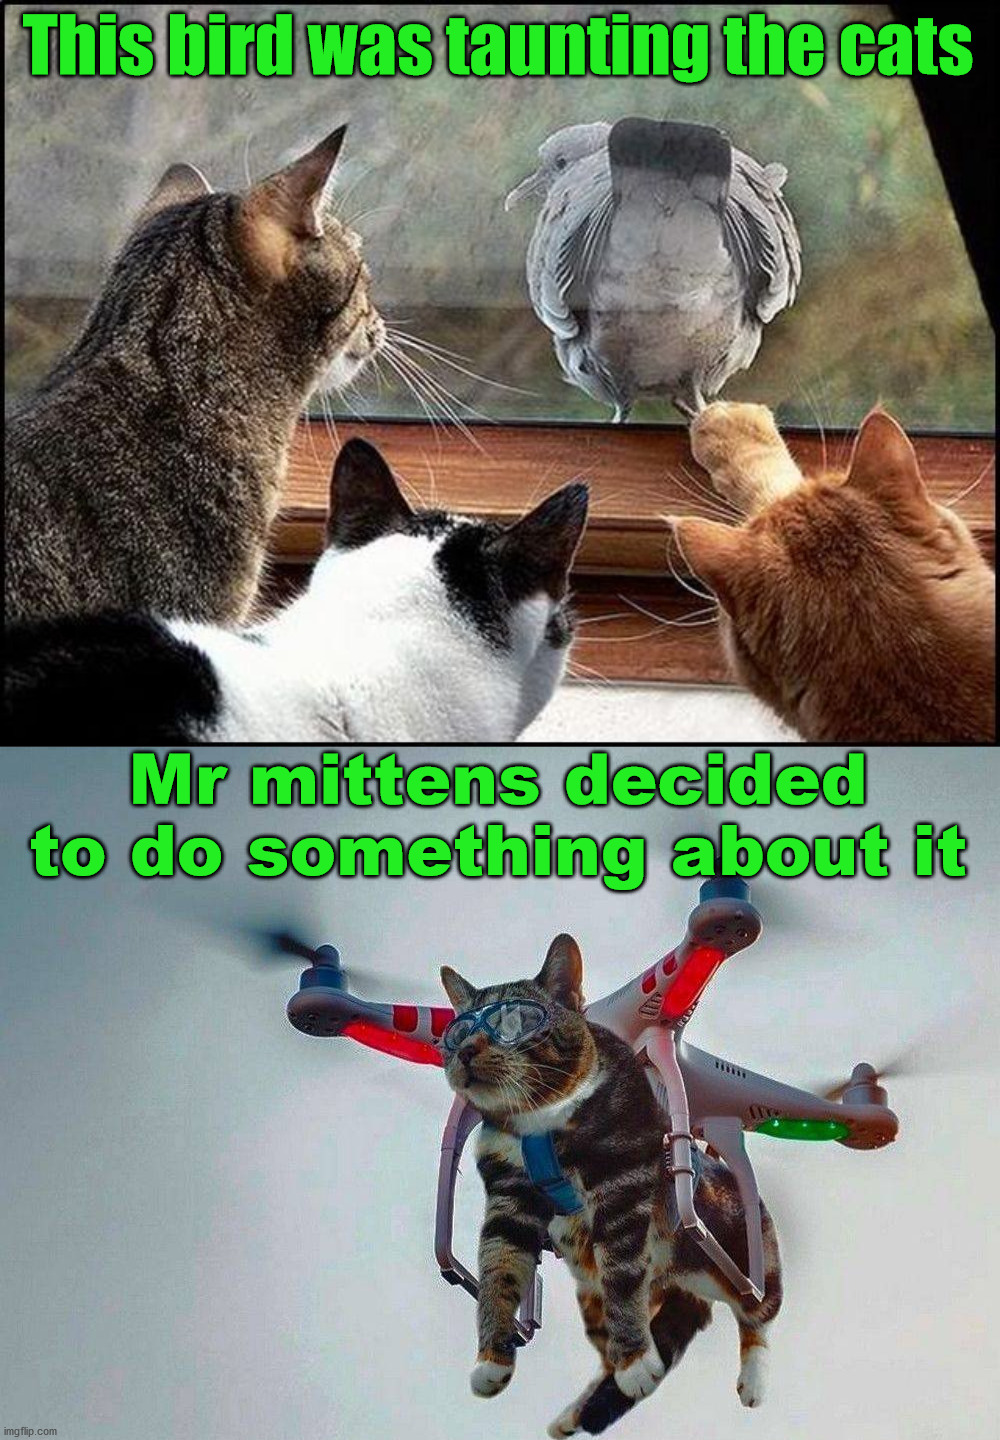 So who is flying the drone? |  This bird was taunting the cats; Mr mittens decided to do something about it | image tagged in cats,french taunting in monty python's holy grail,birds,drone | made w/ Imgflip meme maker